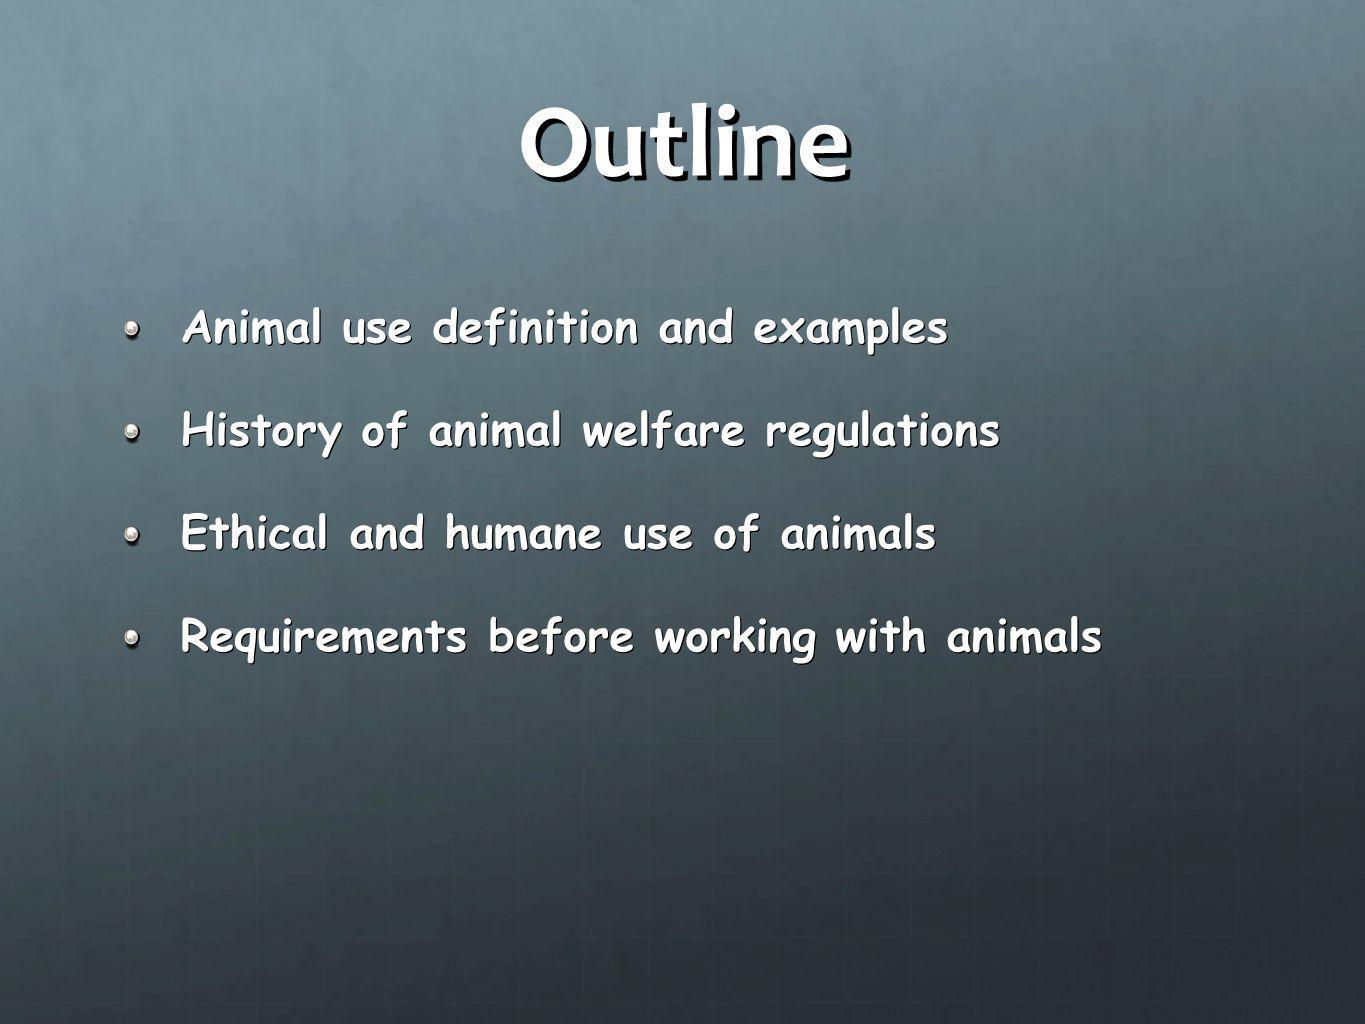 Definition of Animal Use Any live, vertebrate animal used or intended for use in research, research training, experimentation, or biological testing or for related purposes